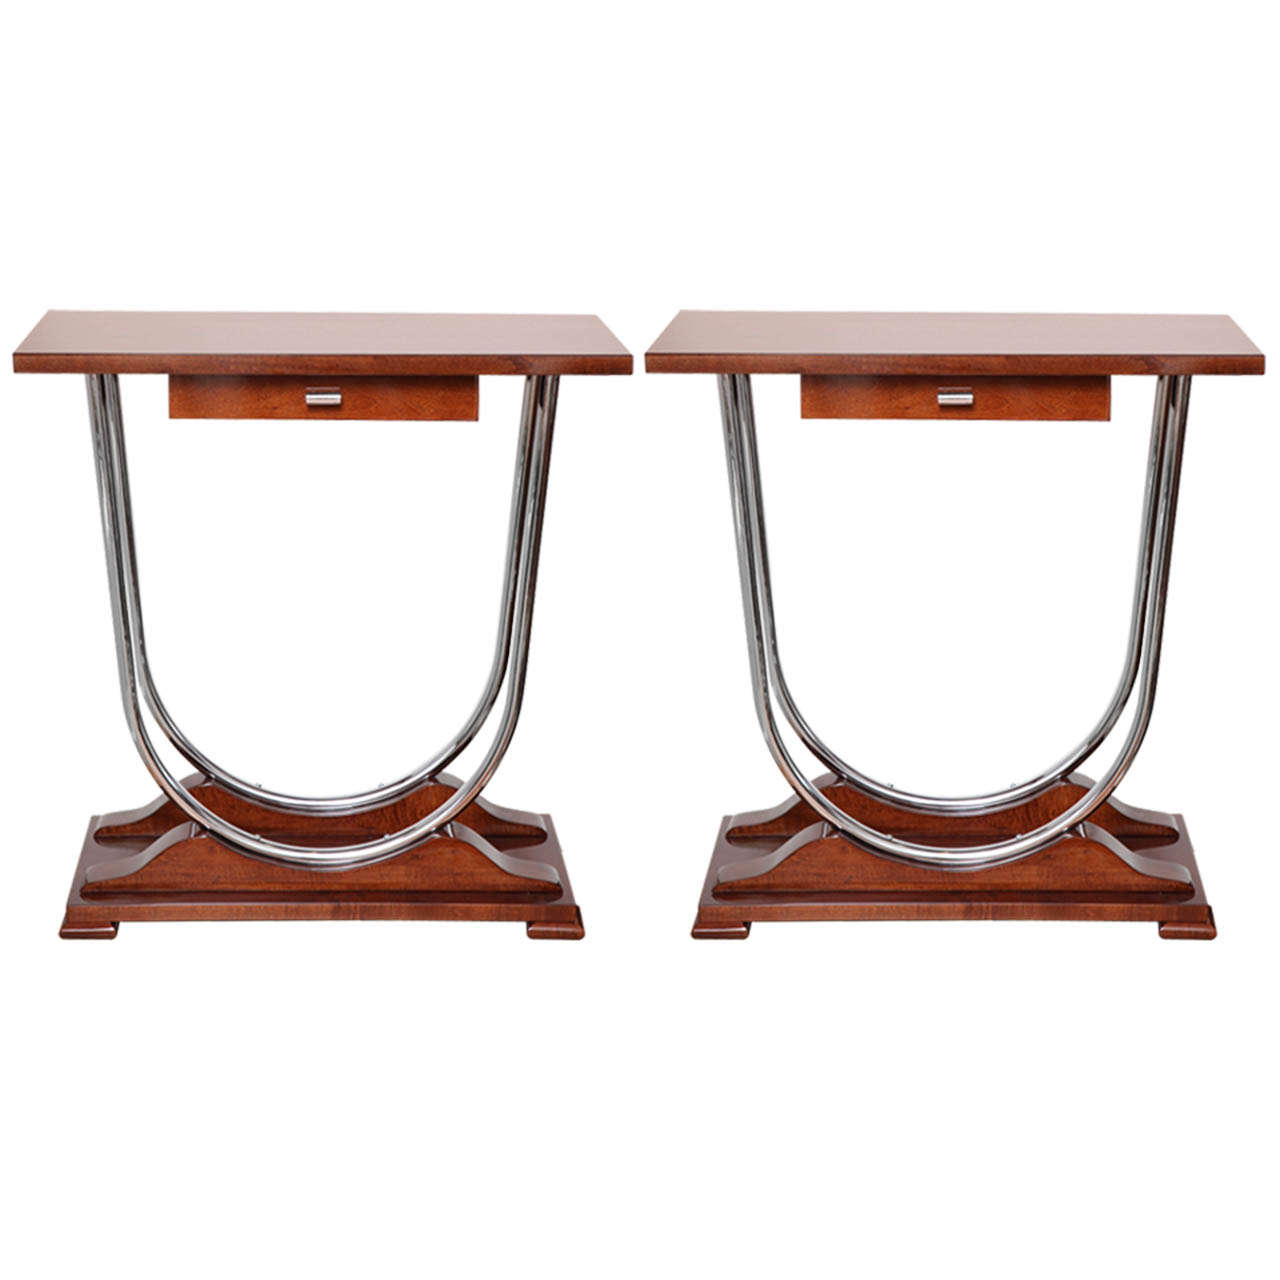 Pair of Machine Age Art Deco Console Tables with Double Chrome U-Support